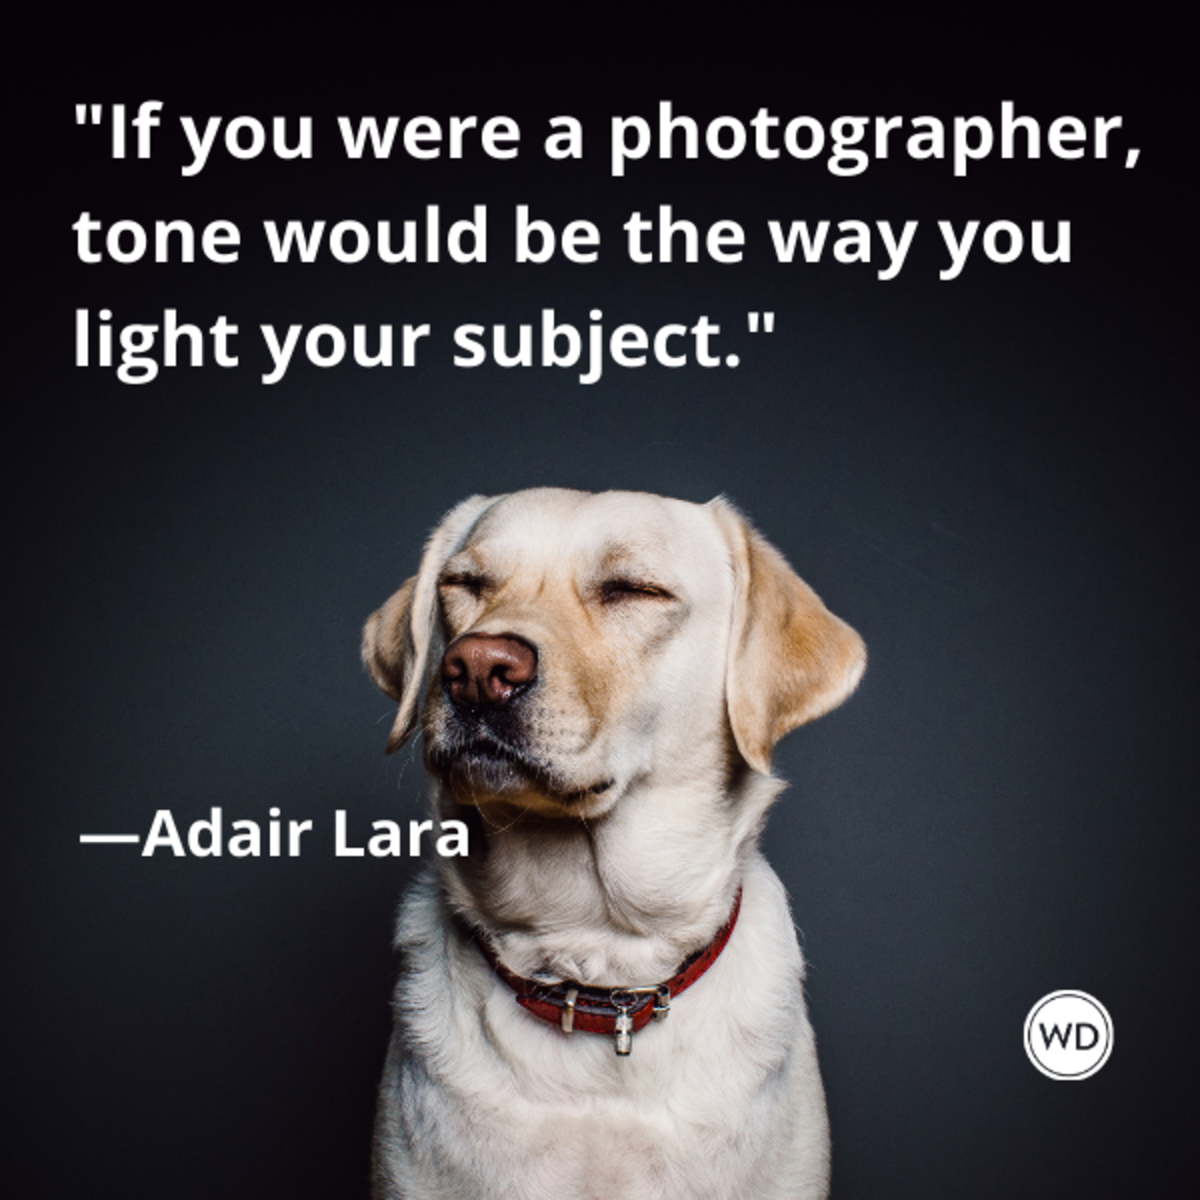 adair_lara_quotes_if_you_were_a_photographer_tone_would_be_the_way_you_light_your_subject_writing_advice_with_dogs